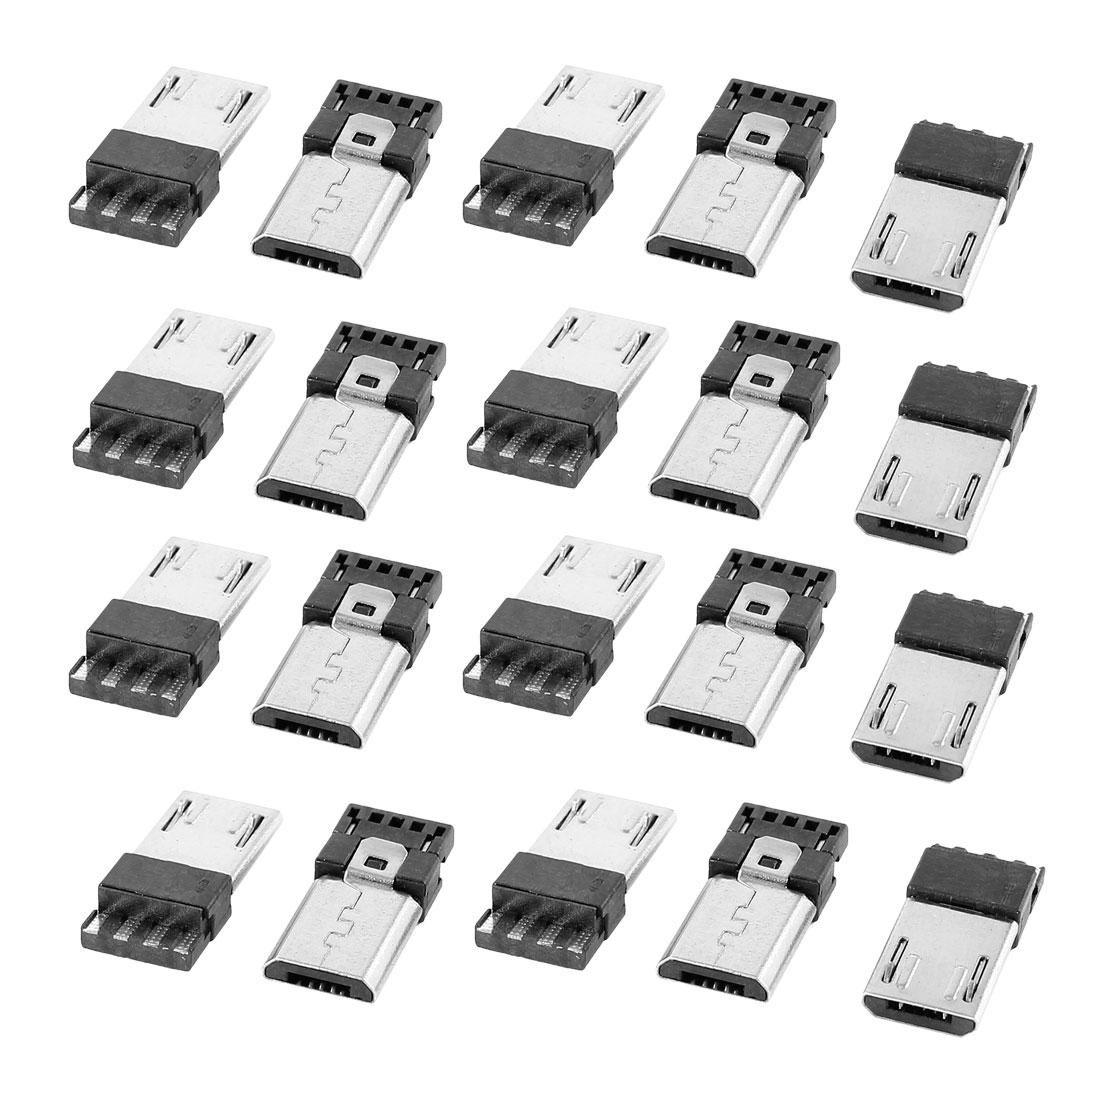 10 Pcs Micro USB Male Type B 5-Pin Jack Port Solder Connector